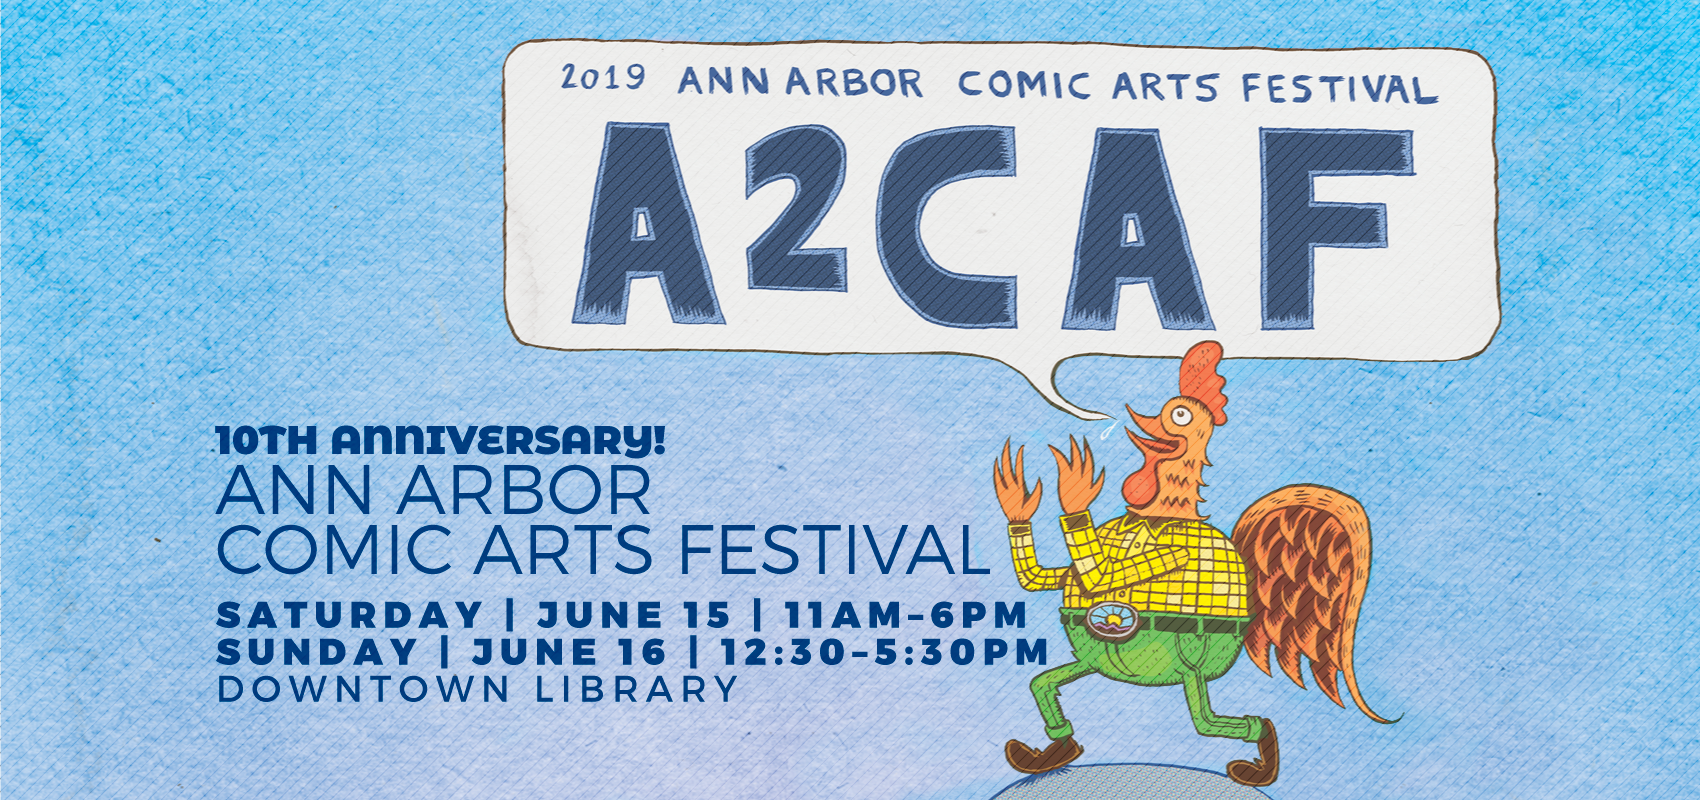 Ann Arbor Comic Arts Festival promo graphic